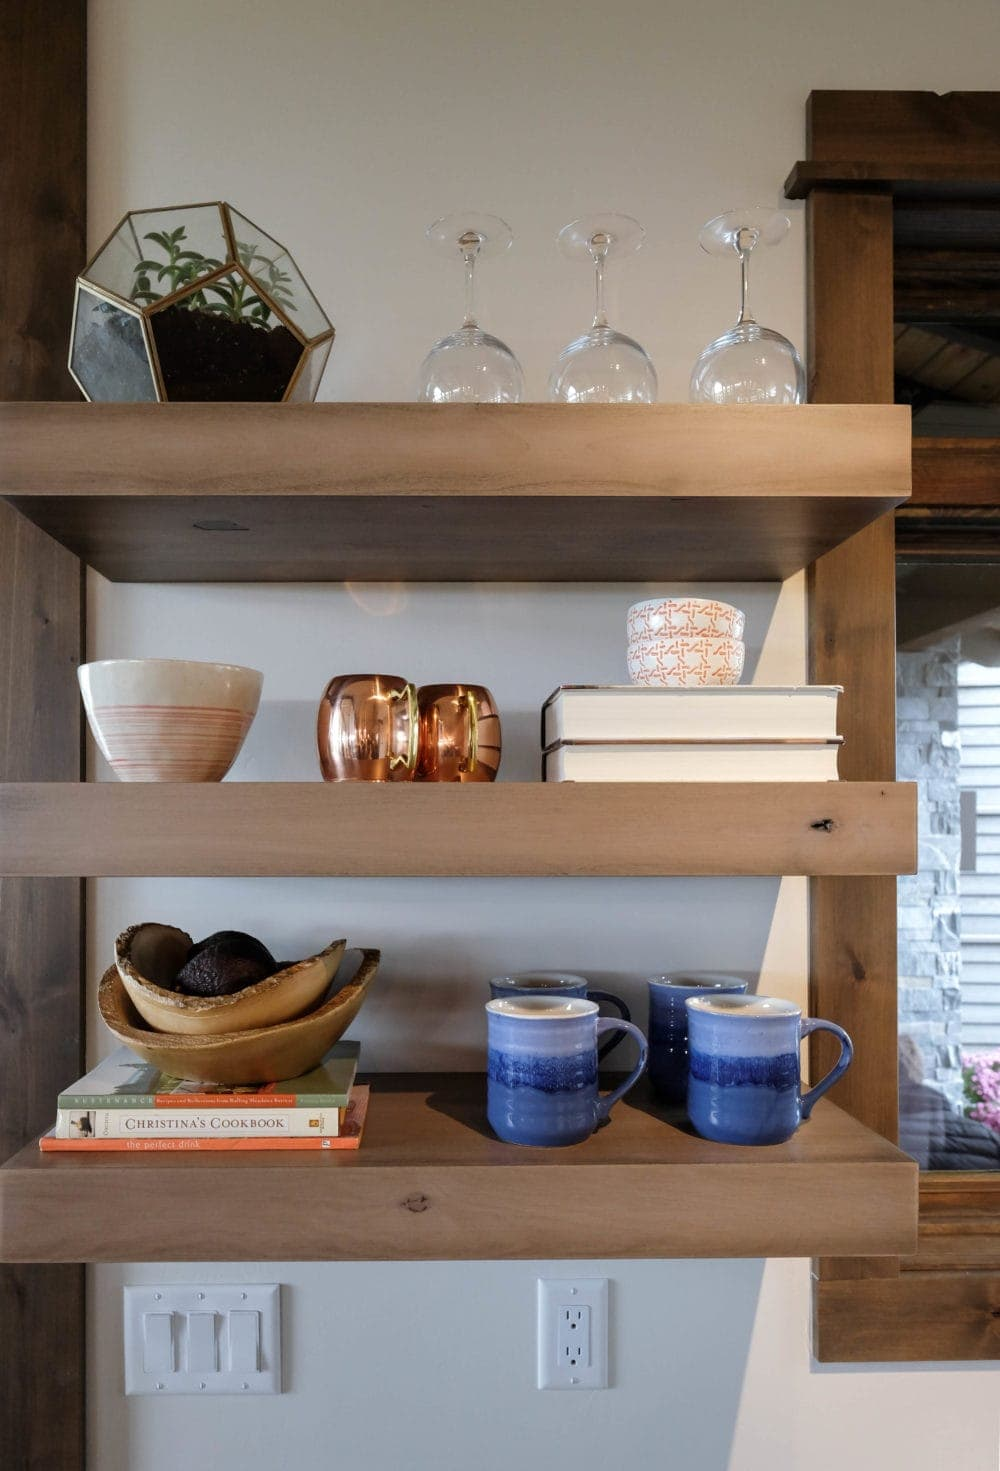 Parade of Homes styled shelf with cups, books, and other decor